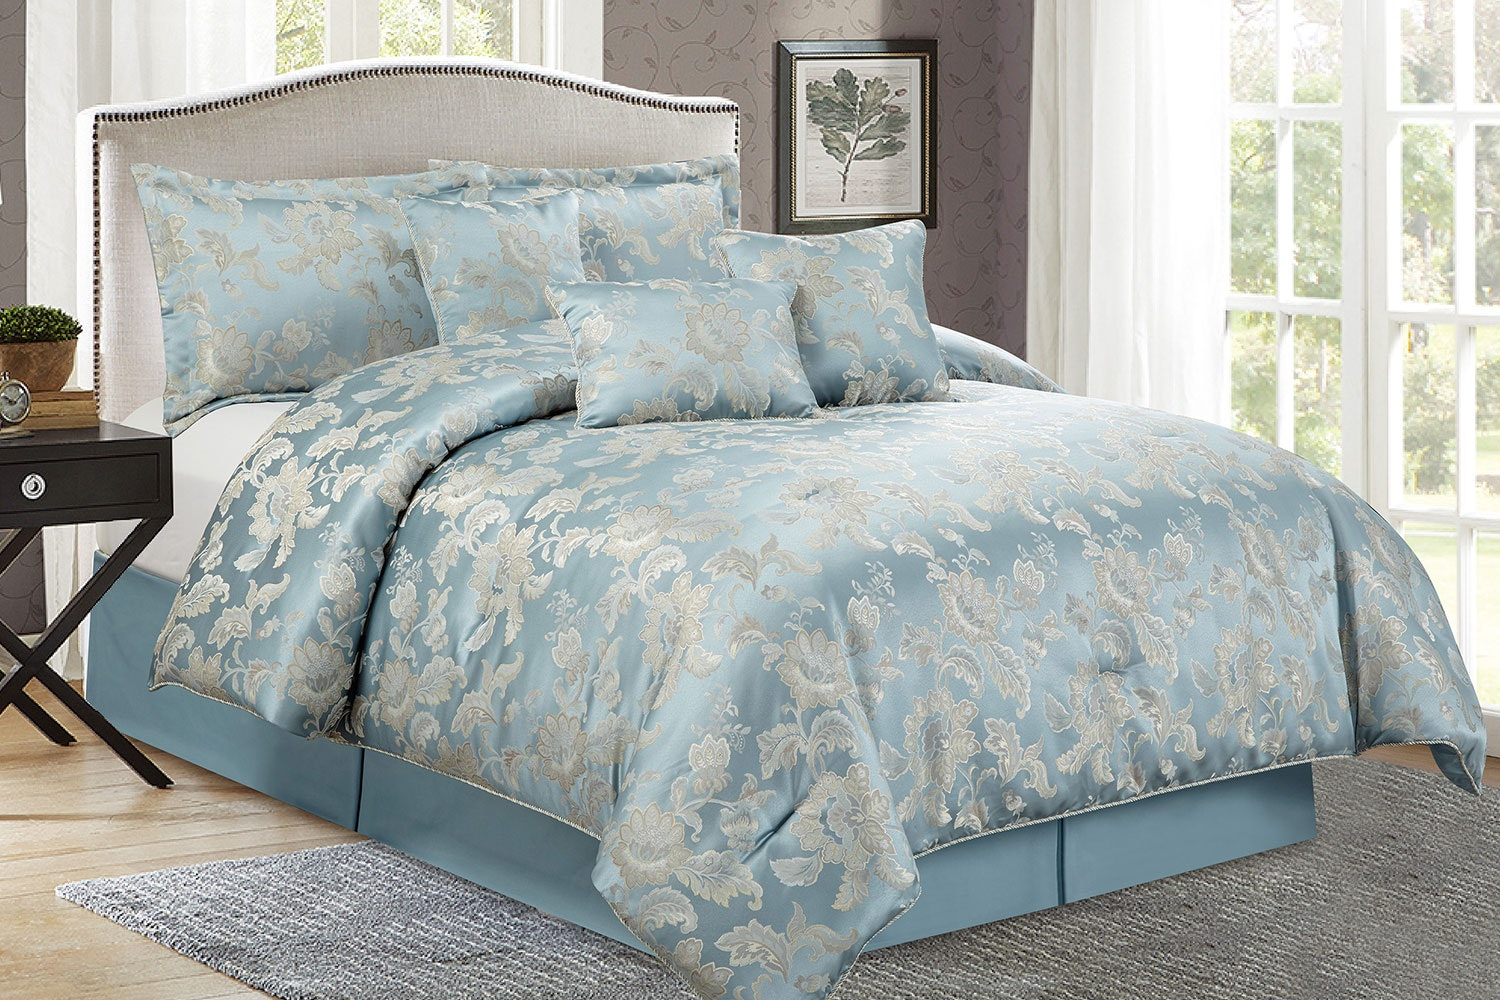 Allegra 7 Piece Comforter Set by Marlborough